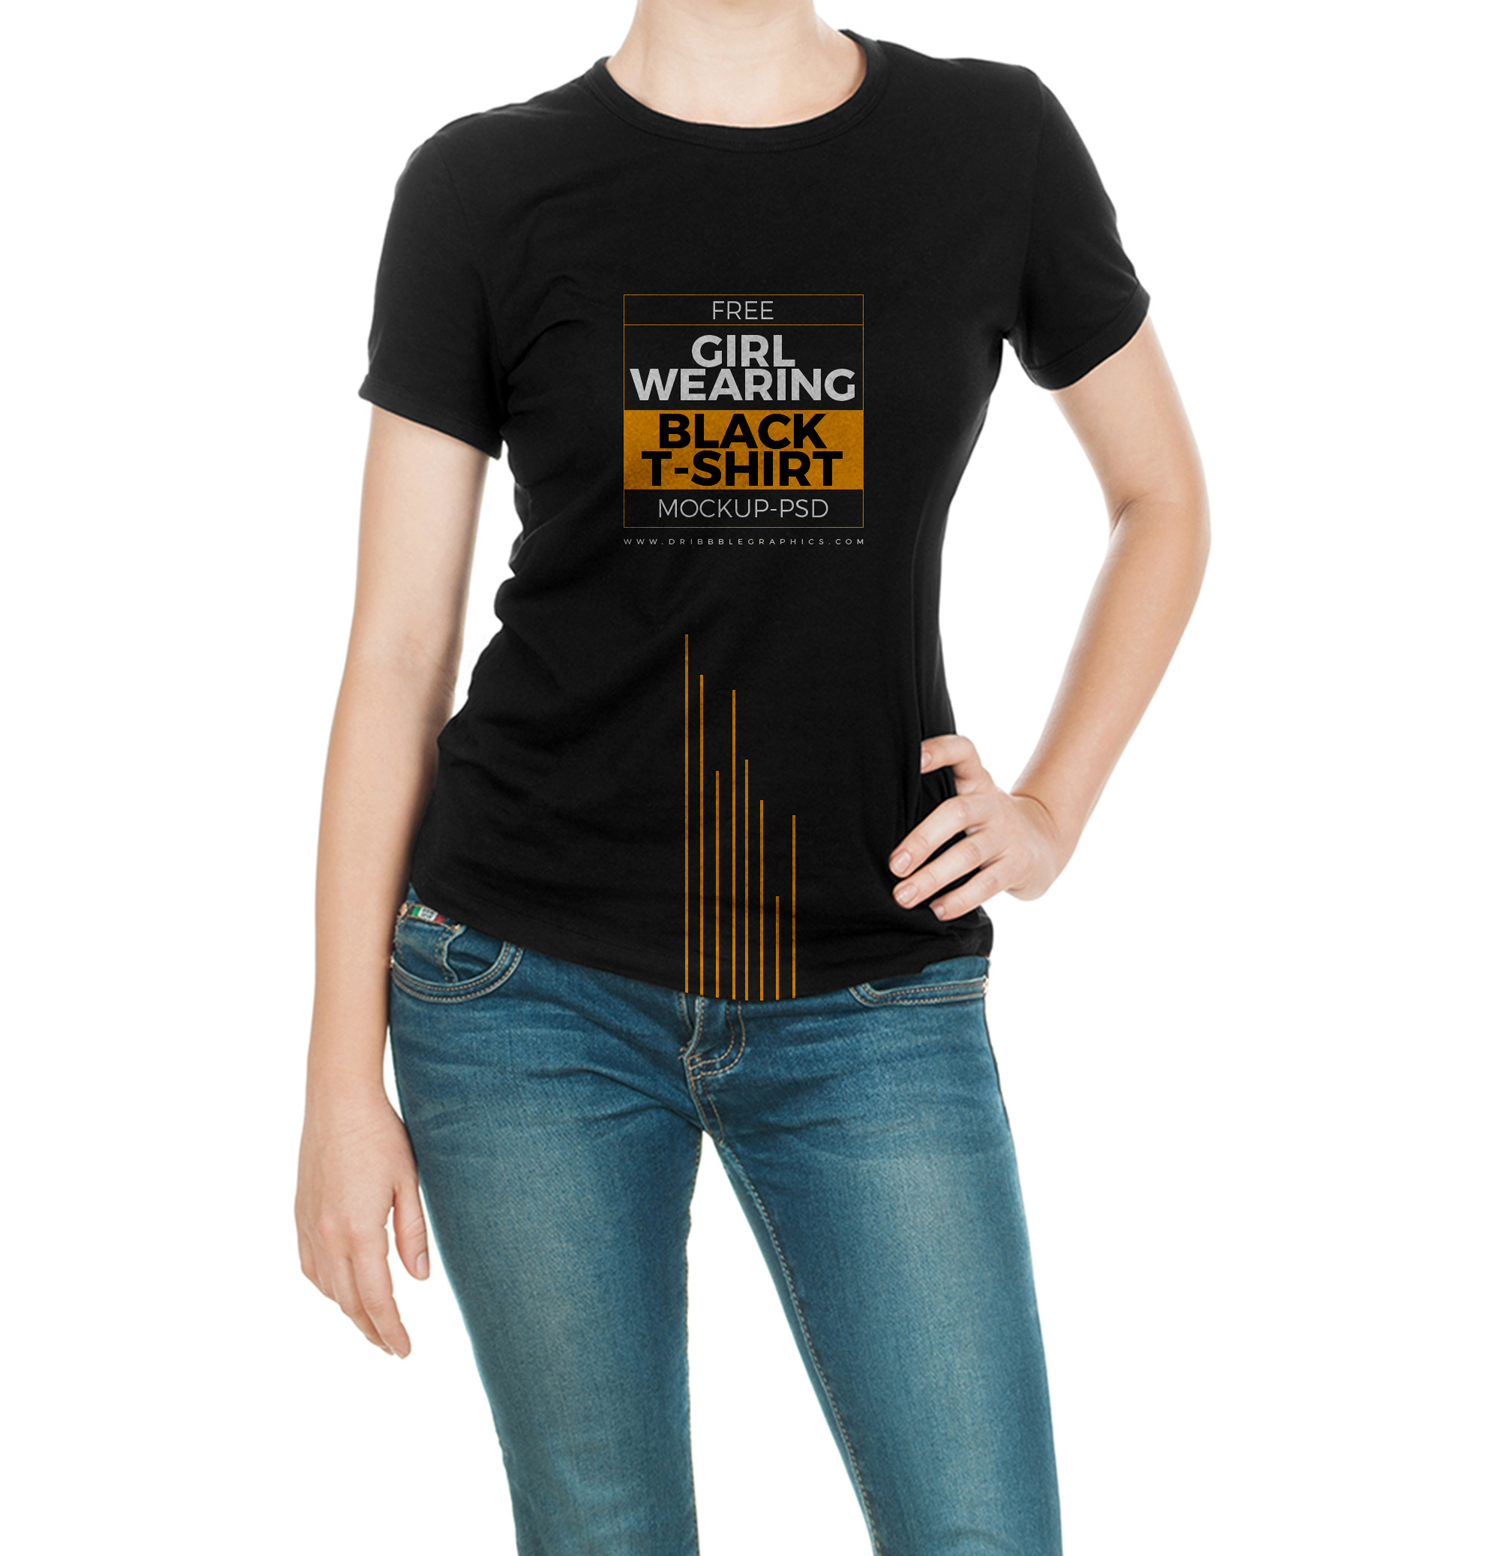 Free-Girl-Wearing-Black-T-Shirt-Mock-up-Psd